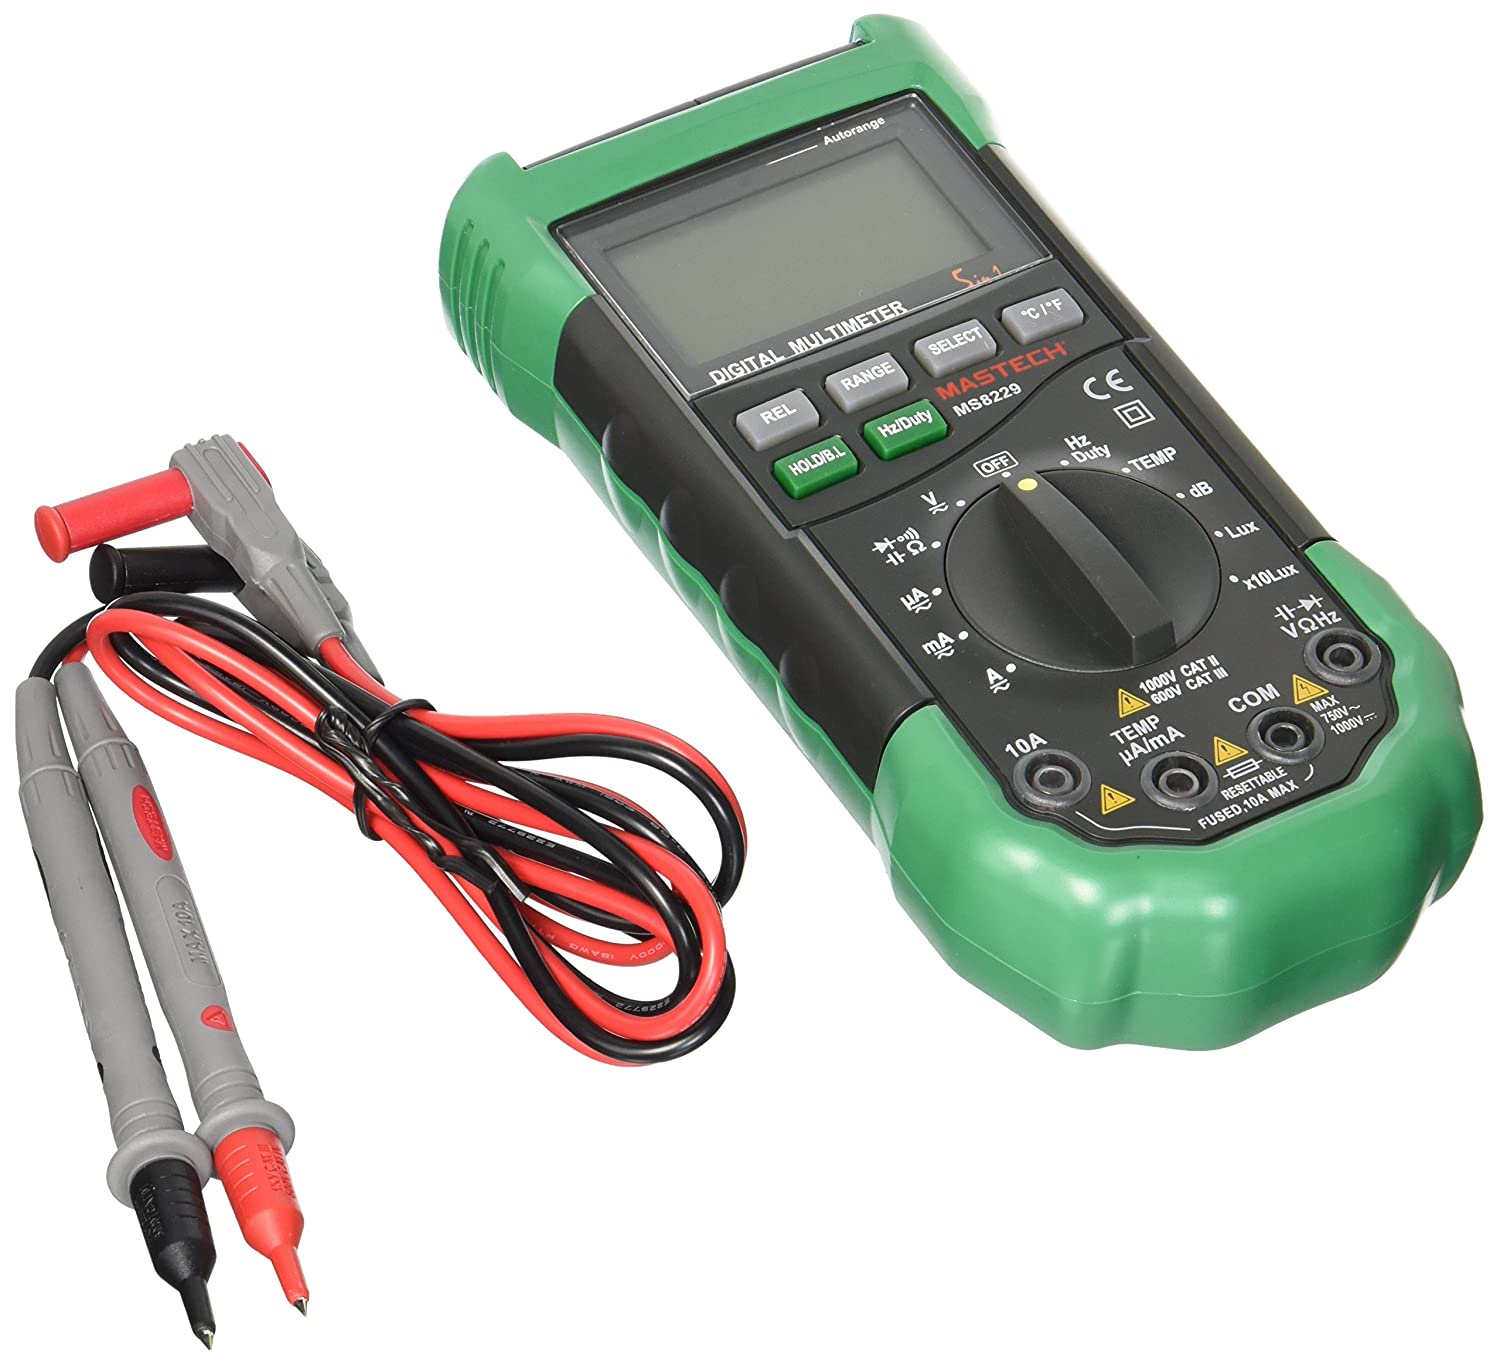 Top 10 Best Digital Multimeter Reviews in 2020 6